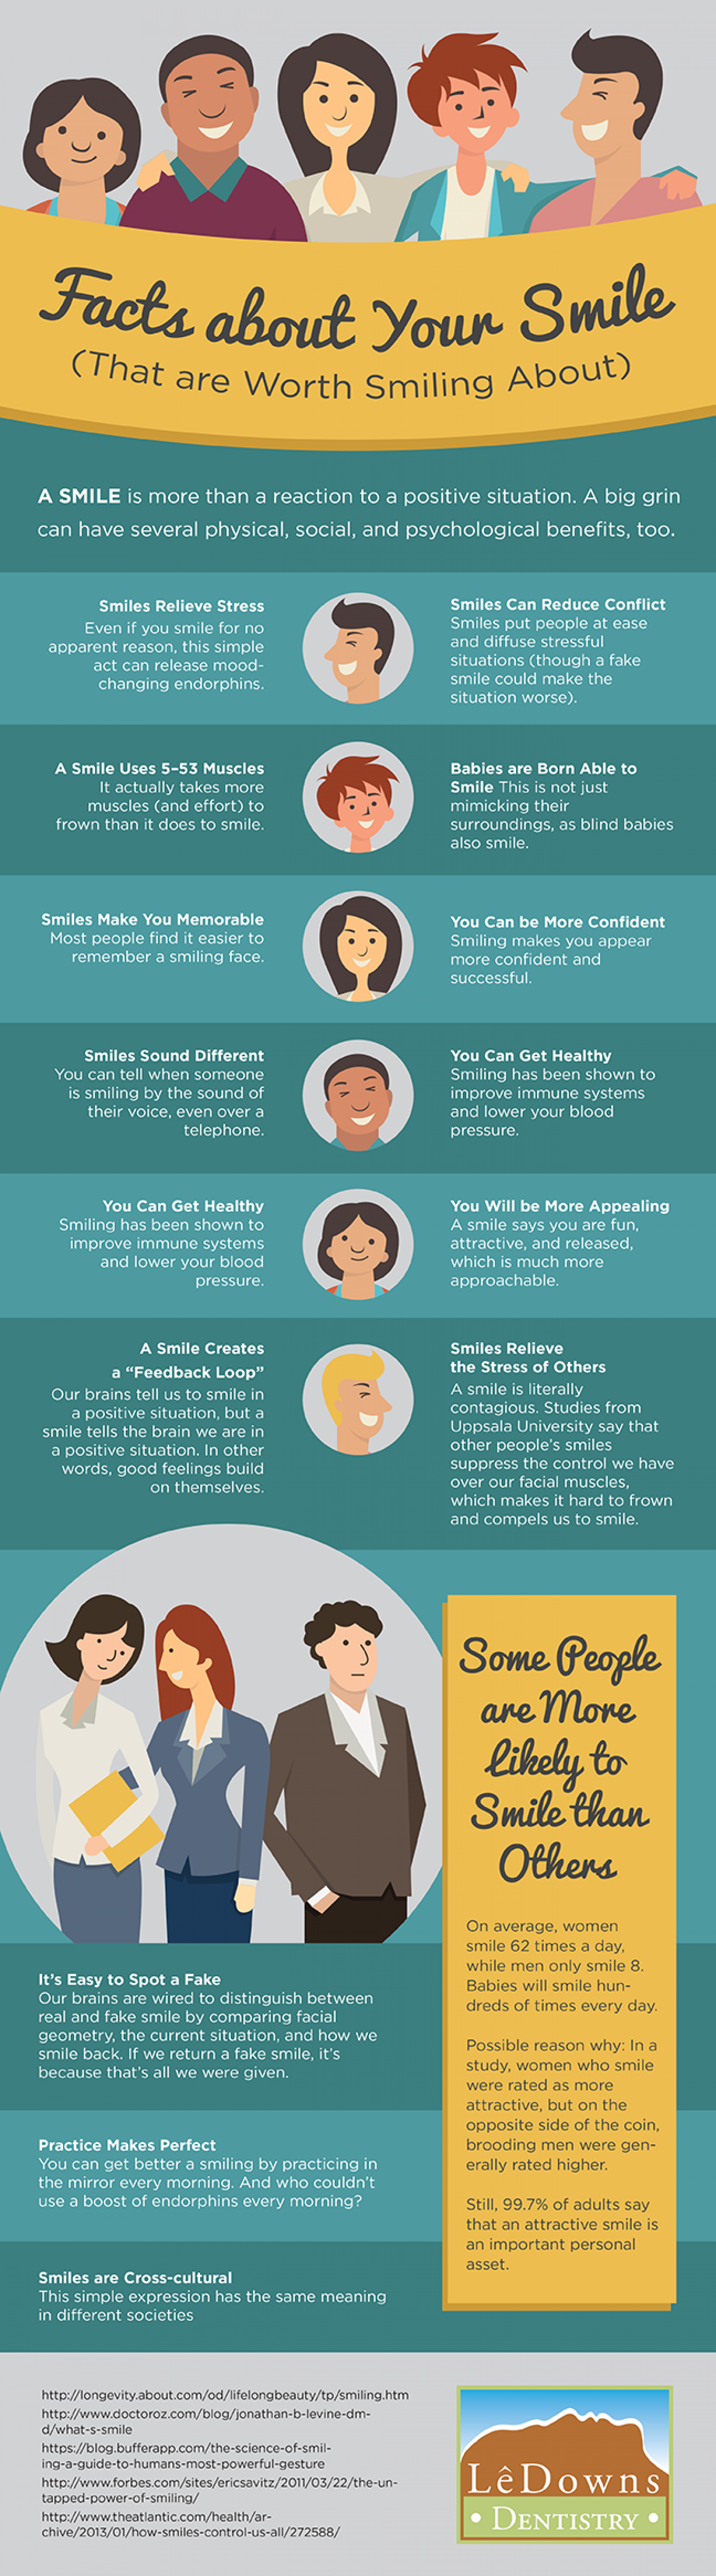 Facts About Your Smile Infographic